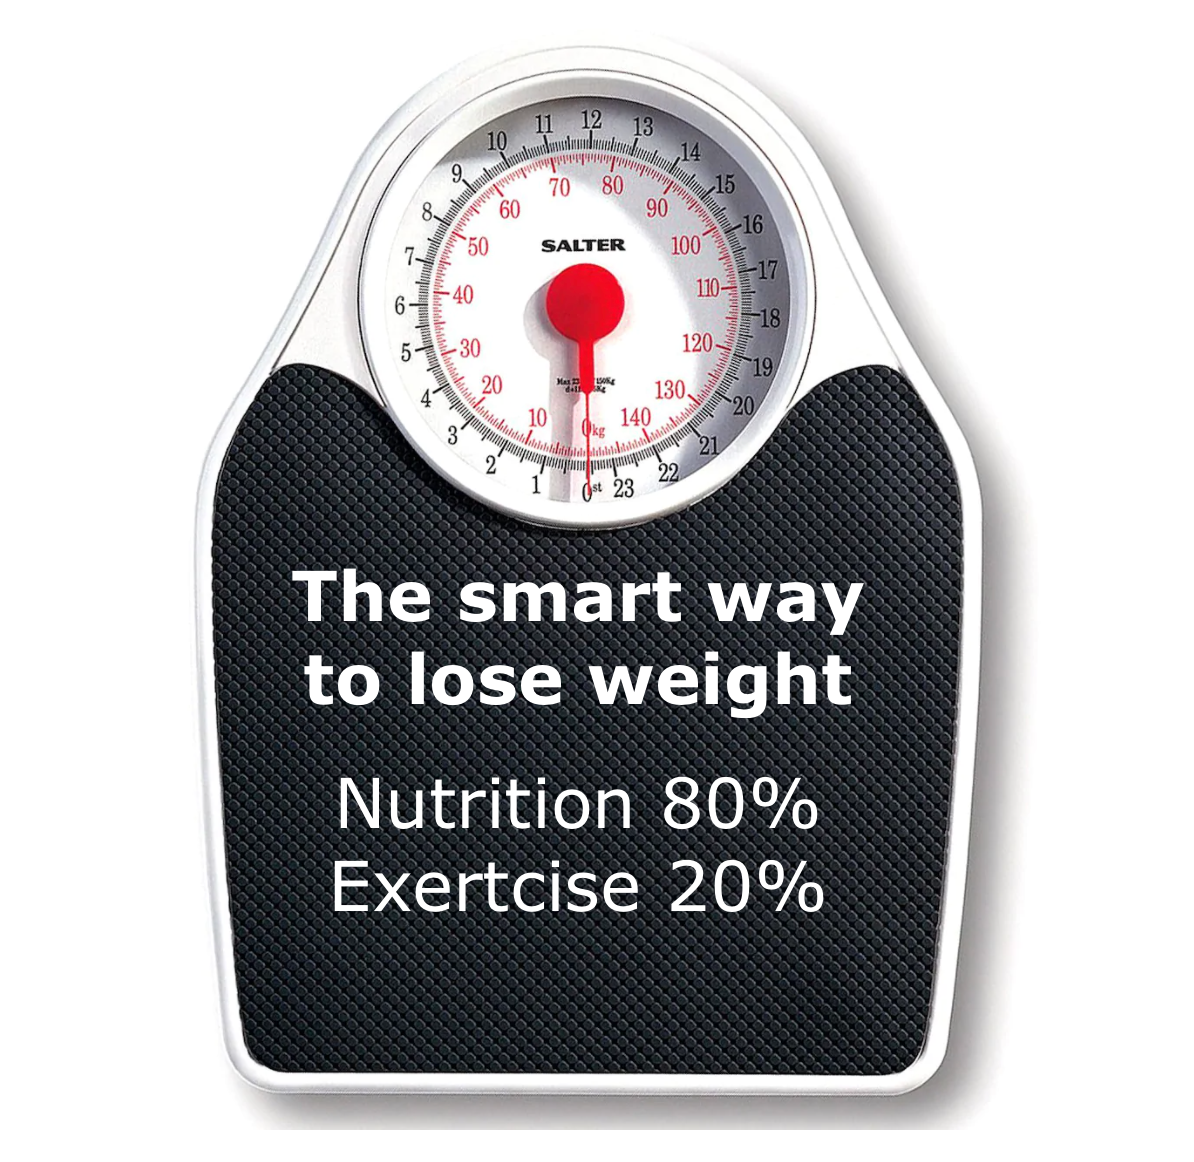 The smart way to lose weight